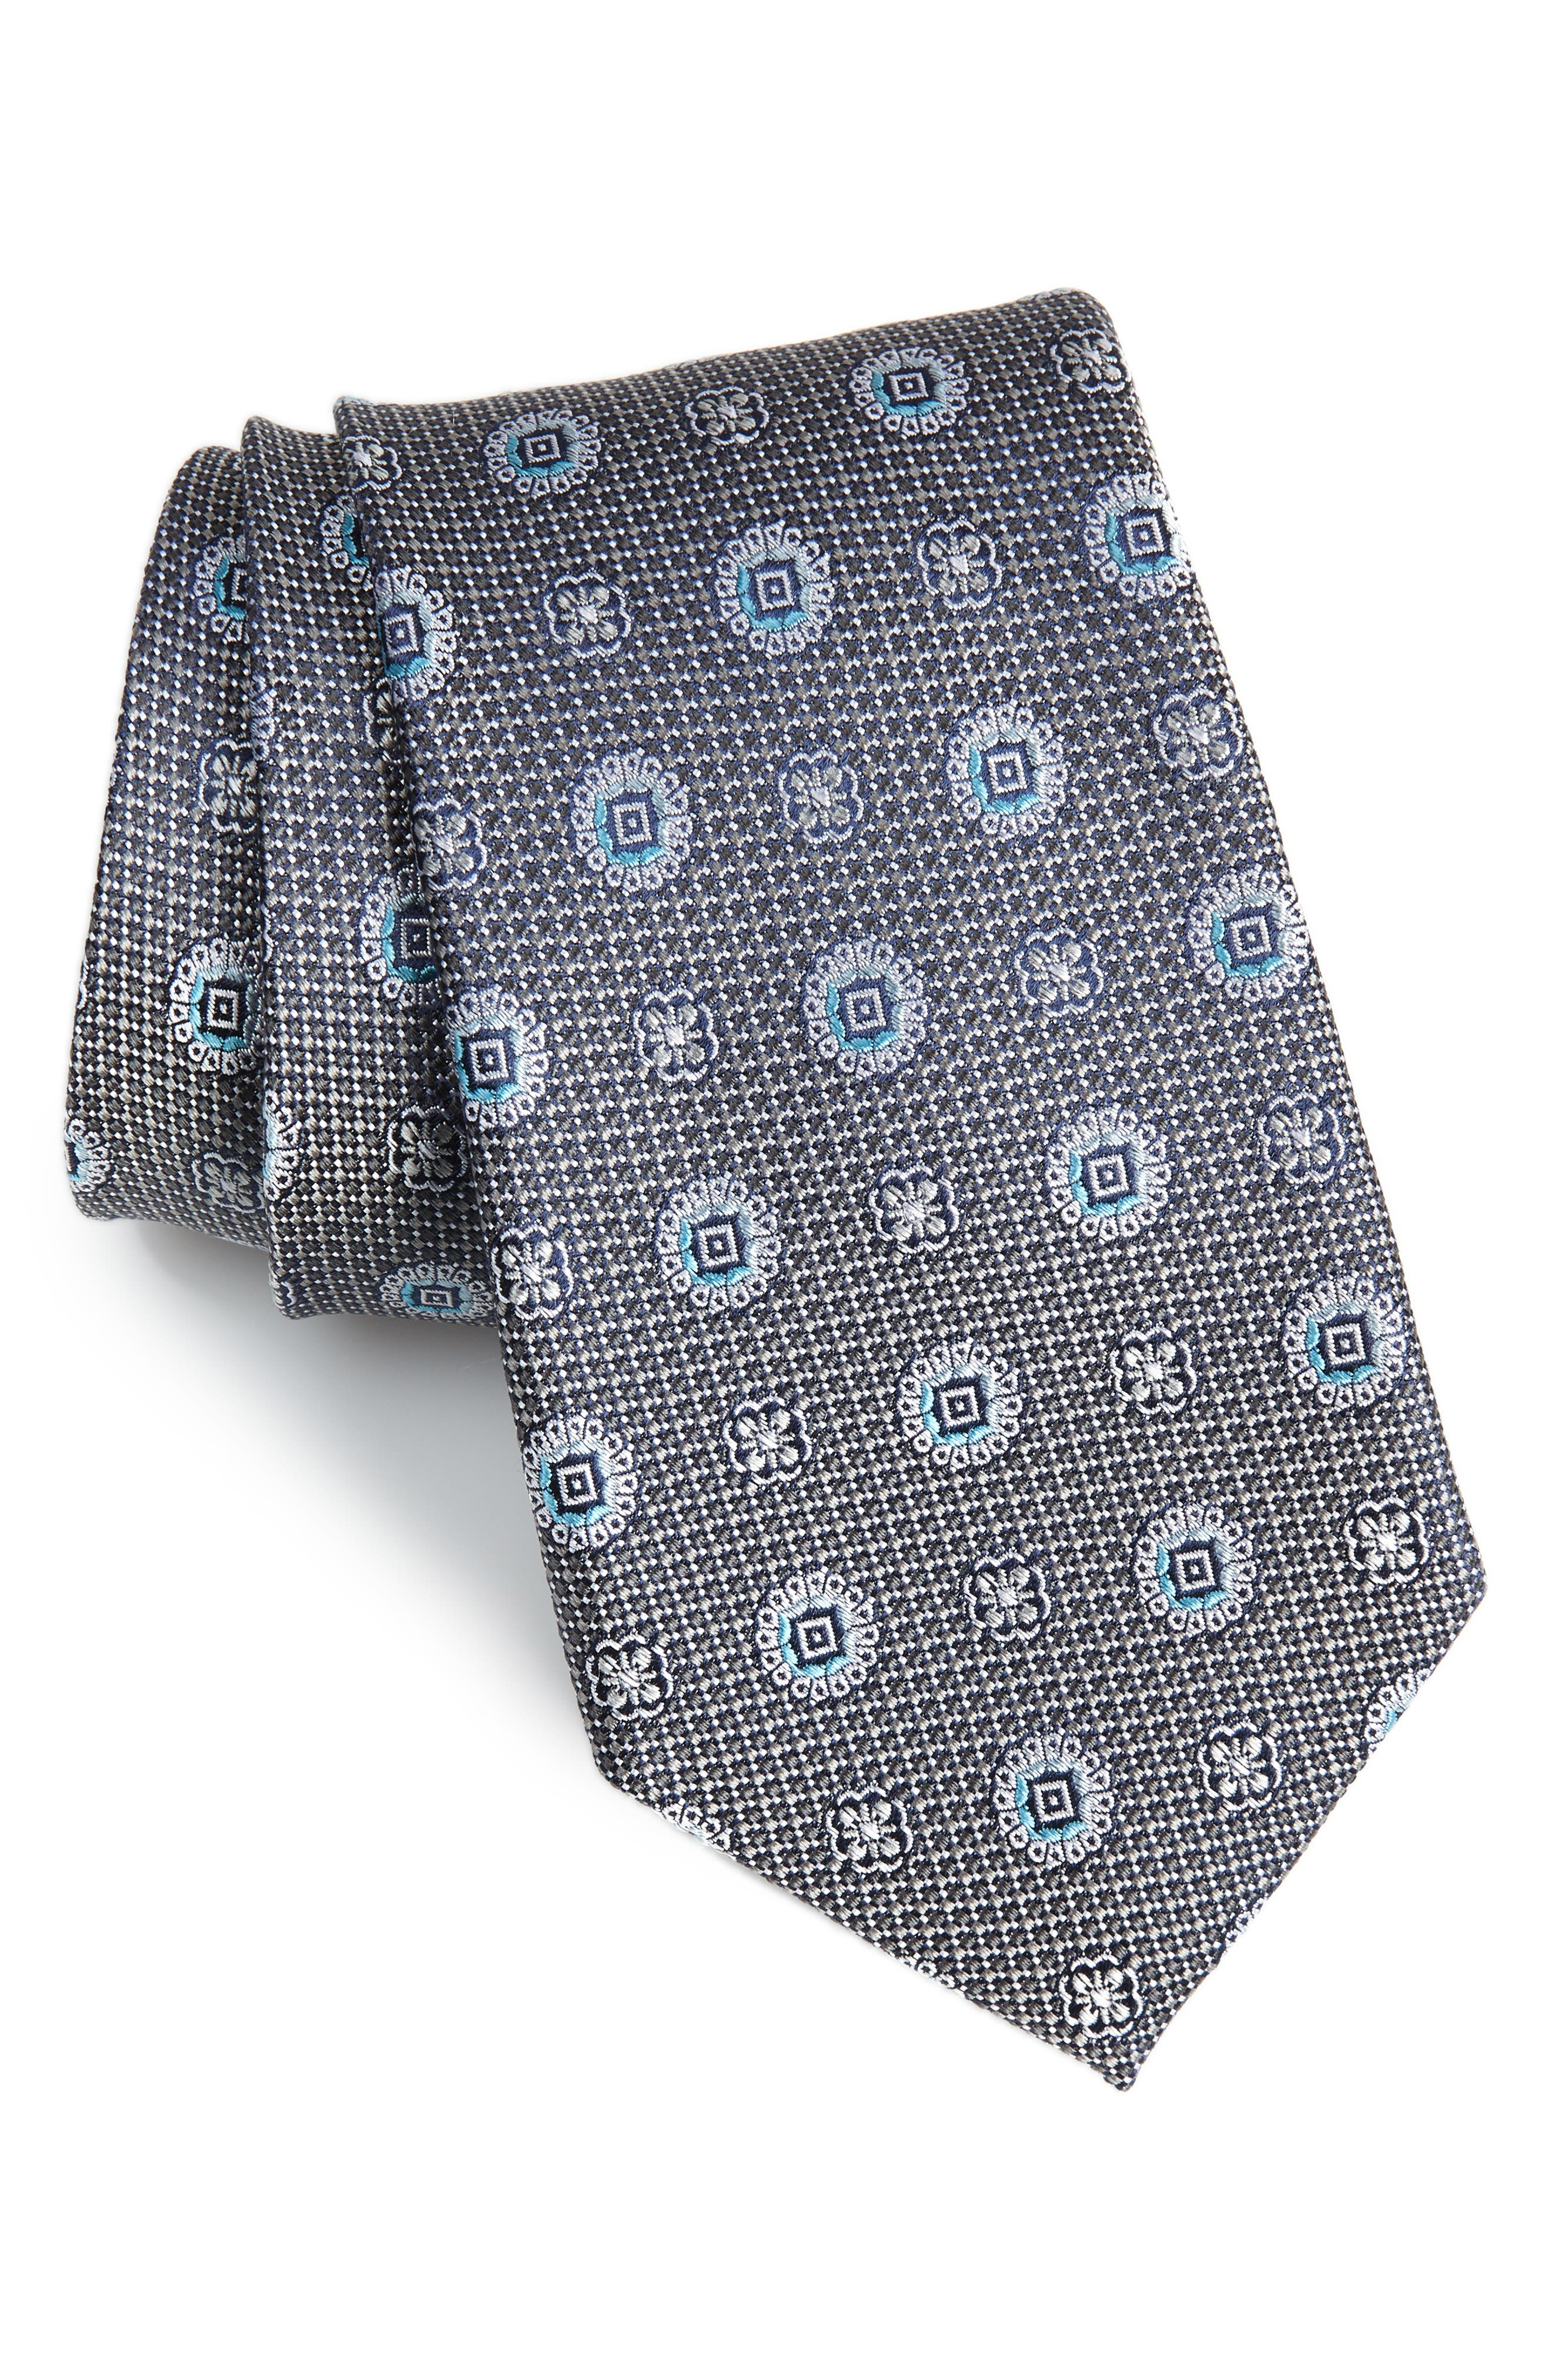 Rurwin Medallion Tie,                         Main,                         color, 020